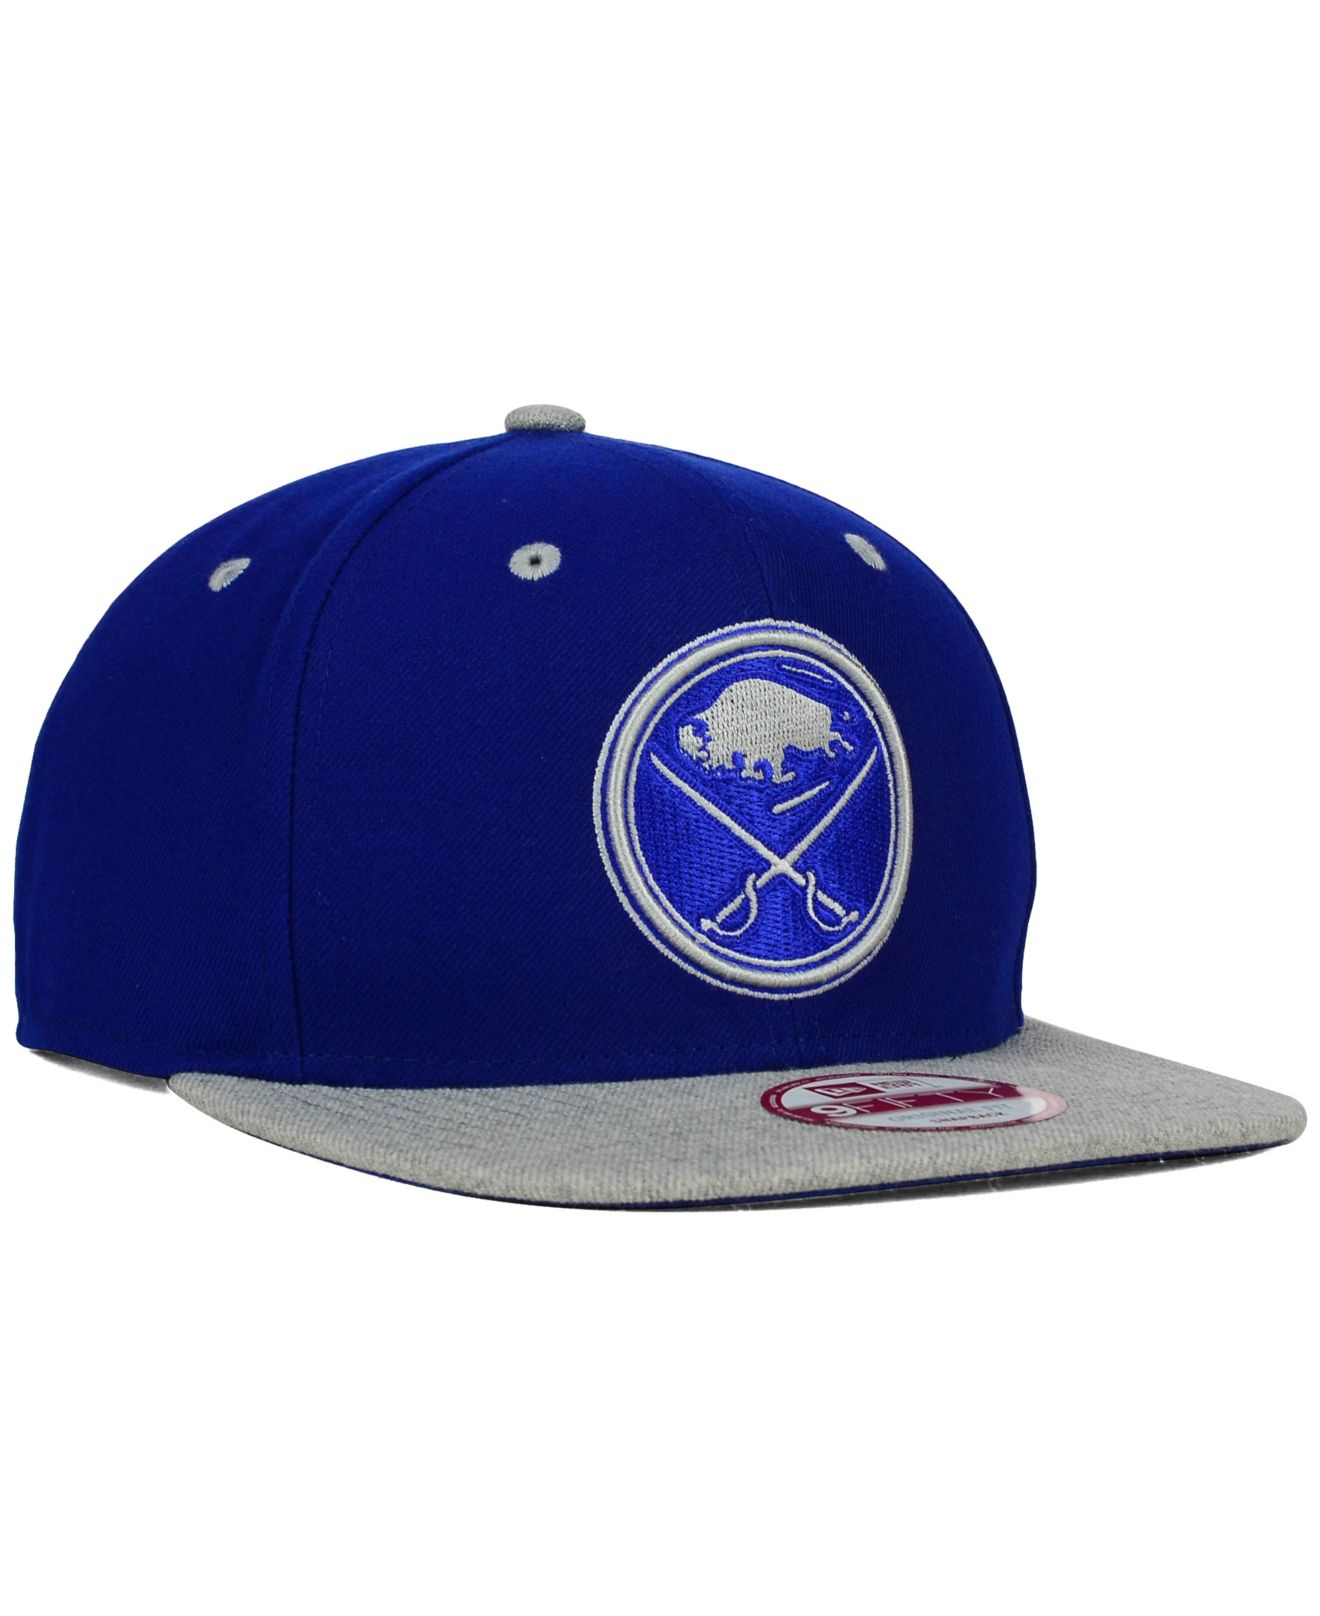 official photos e743e 58b53 ... best price lyst ktz buffalo sabres color pop heather 9fifty snapback cap  in fbe80 422fa